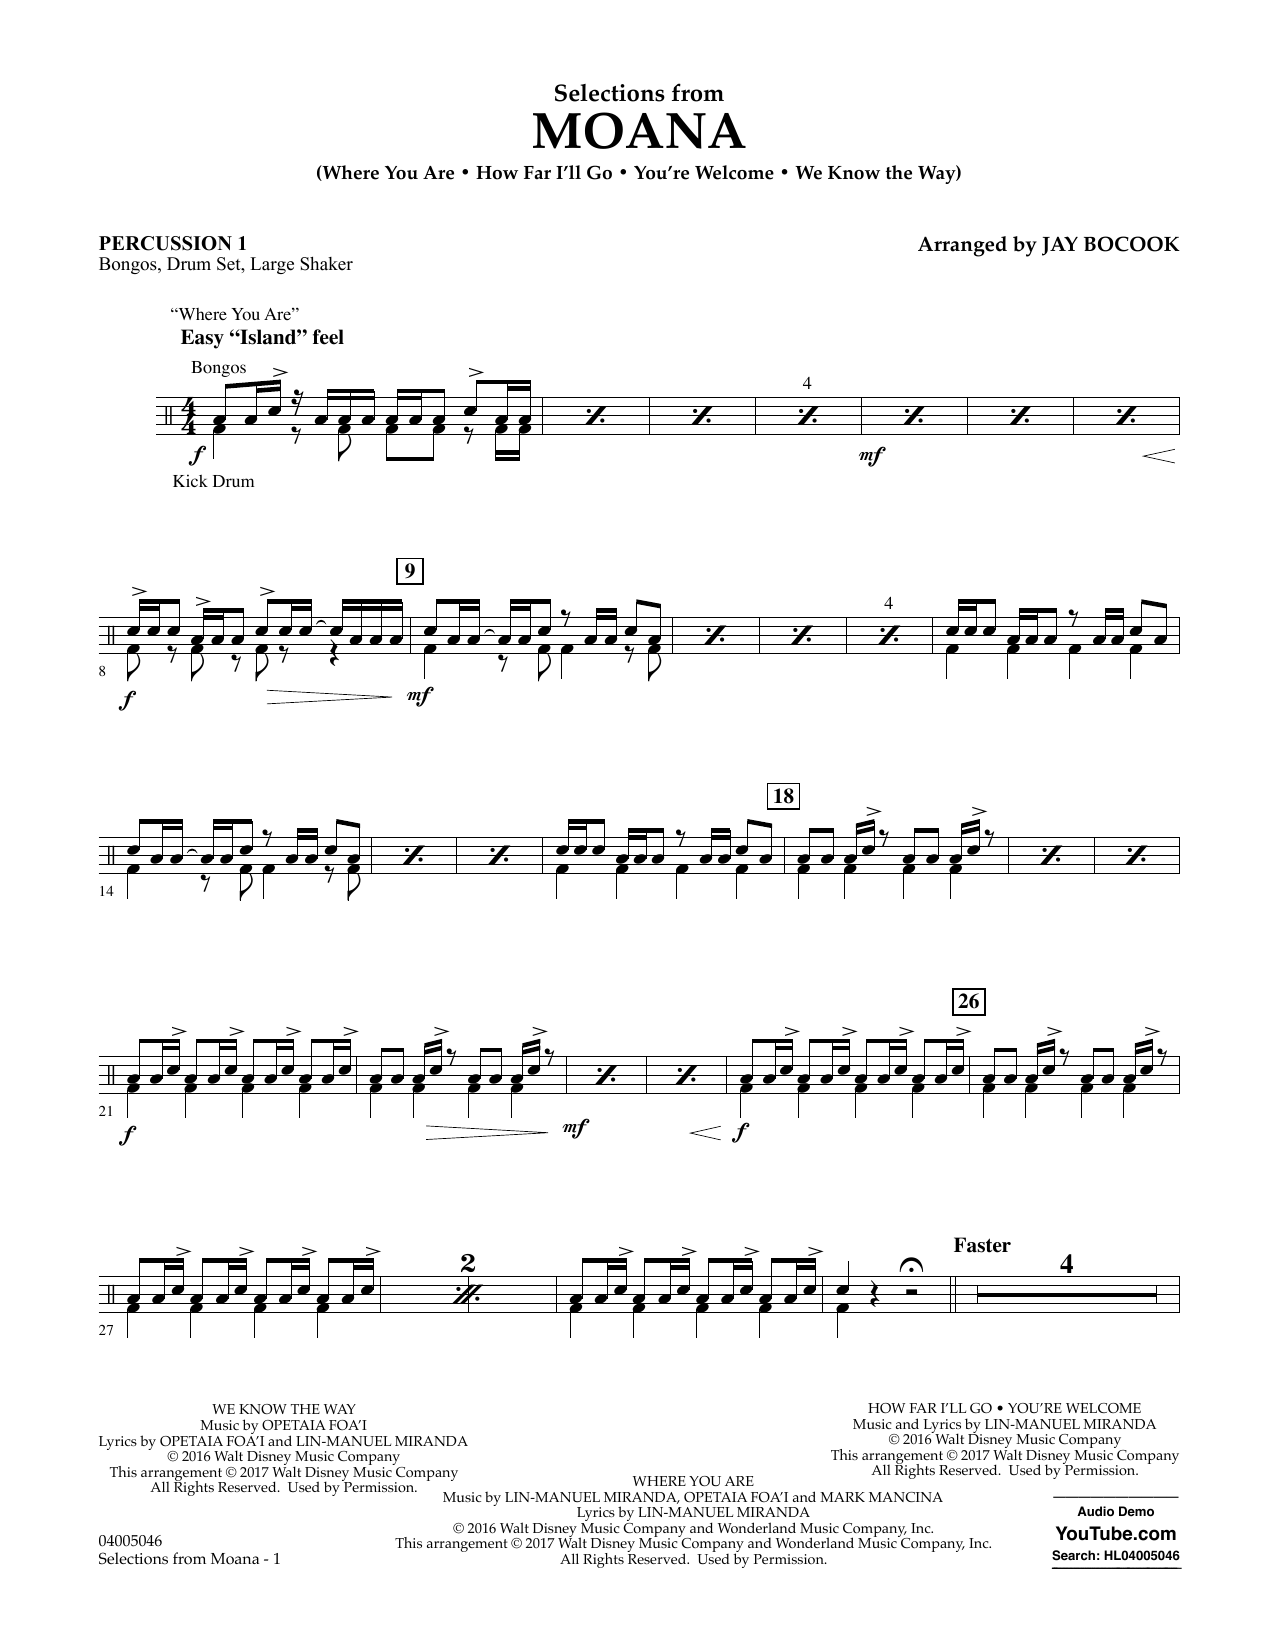 Selections from Moana - Percussion 1 Sheet Music